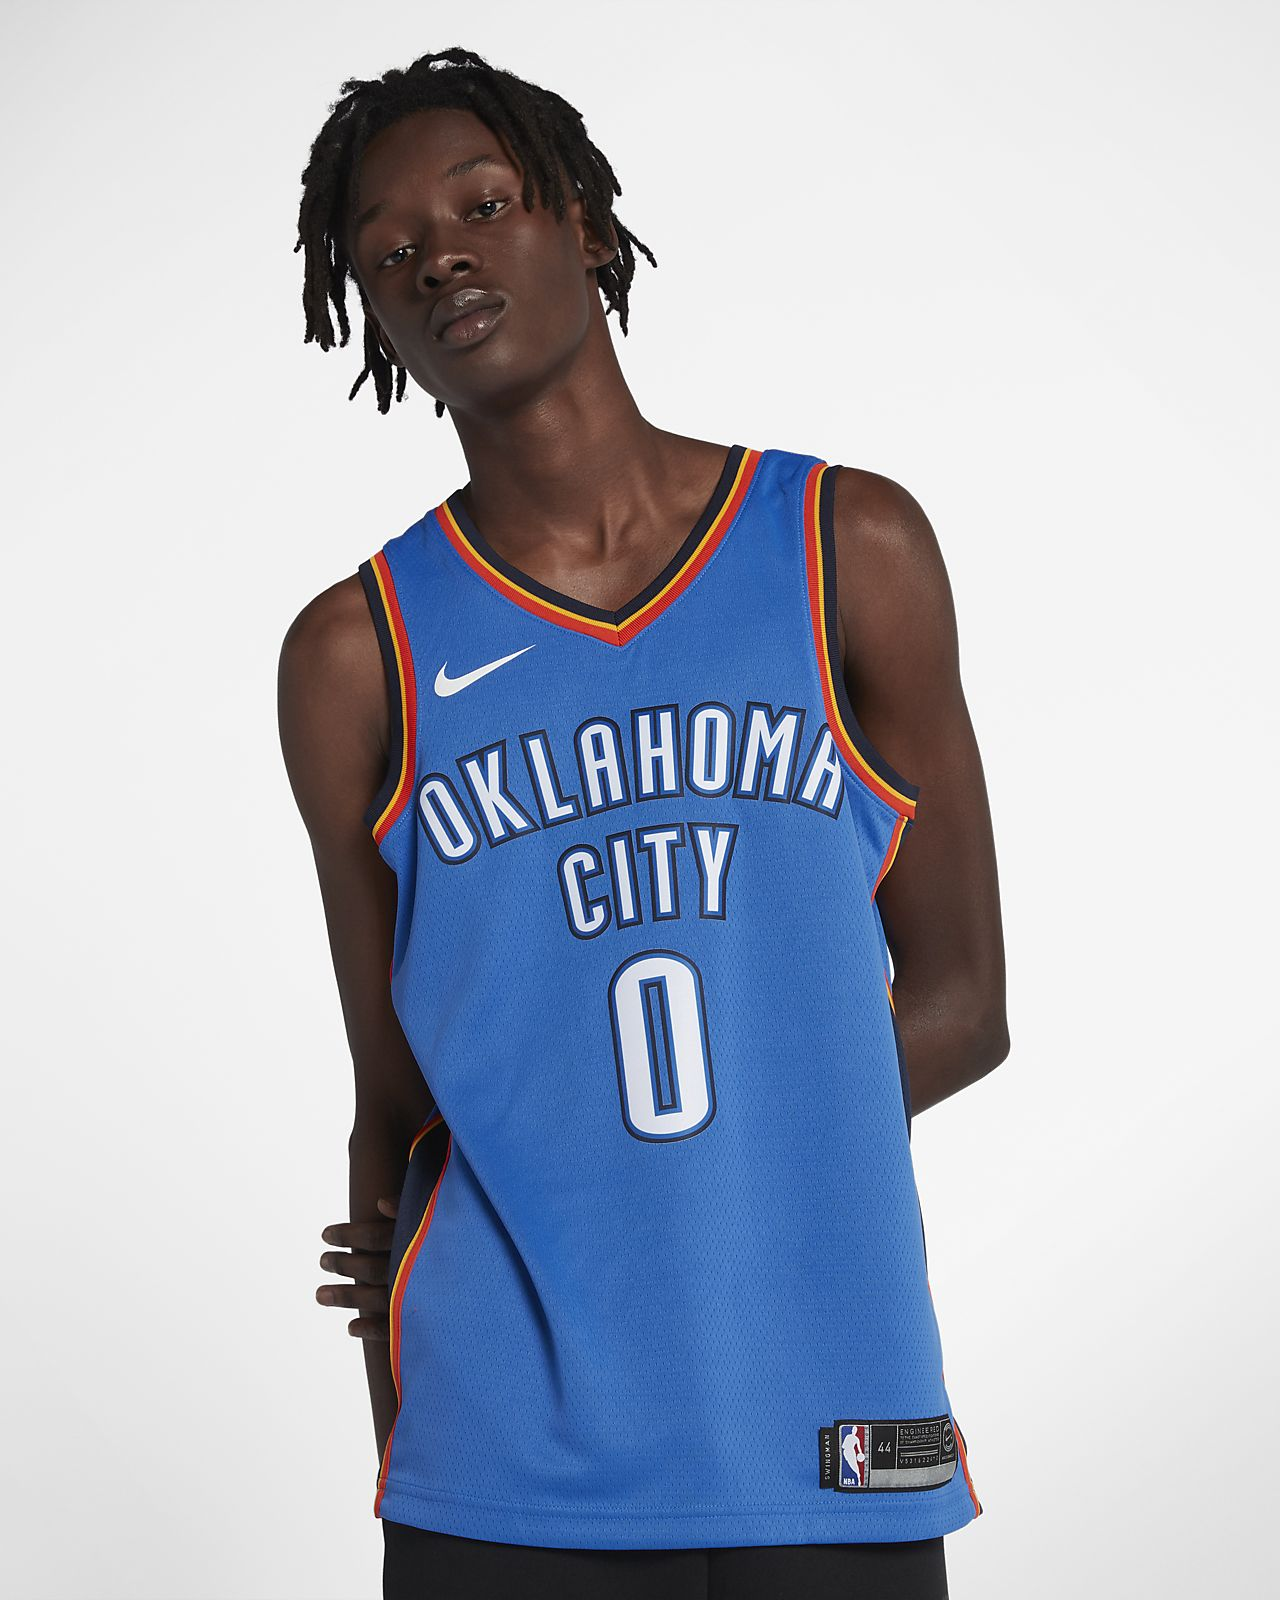 innovative design d9d8b 26c05 Men s NBA Jersey. Russell Westbrook Icon Edition Swingman (Oklahoma City  Thunder)